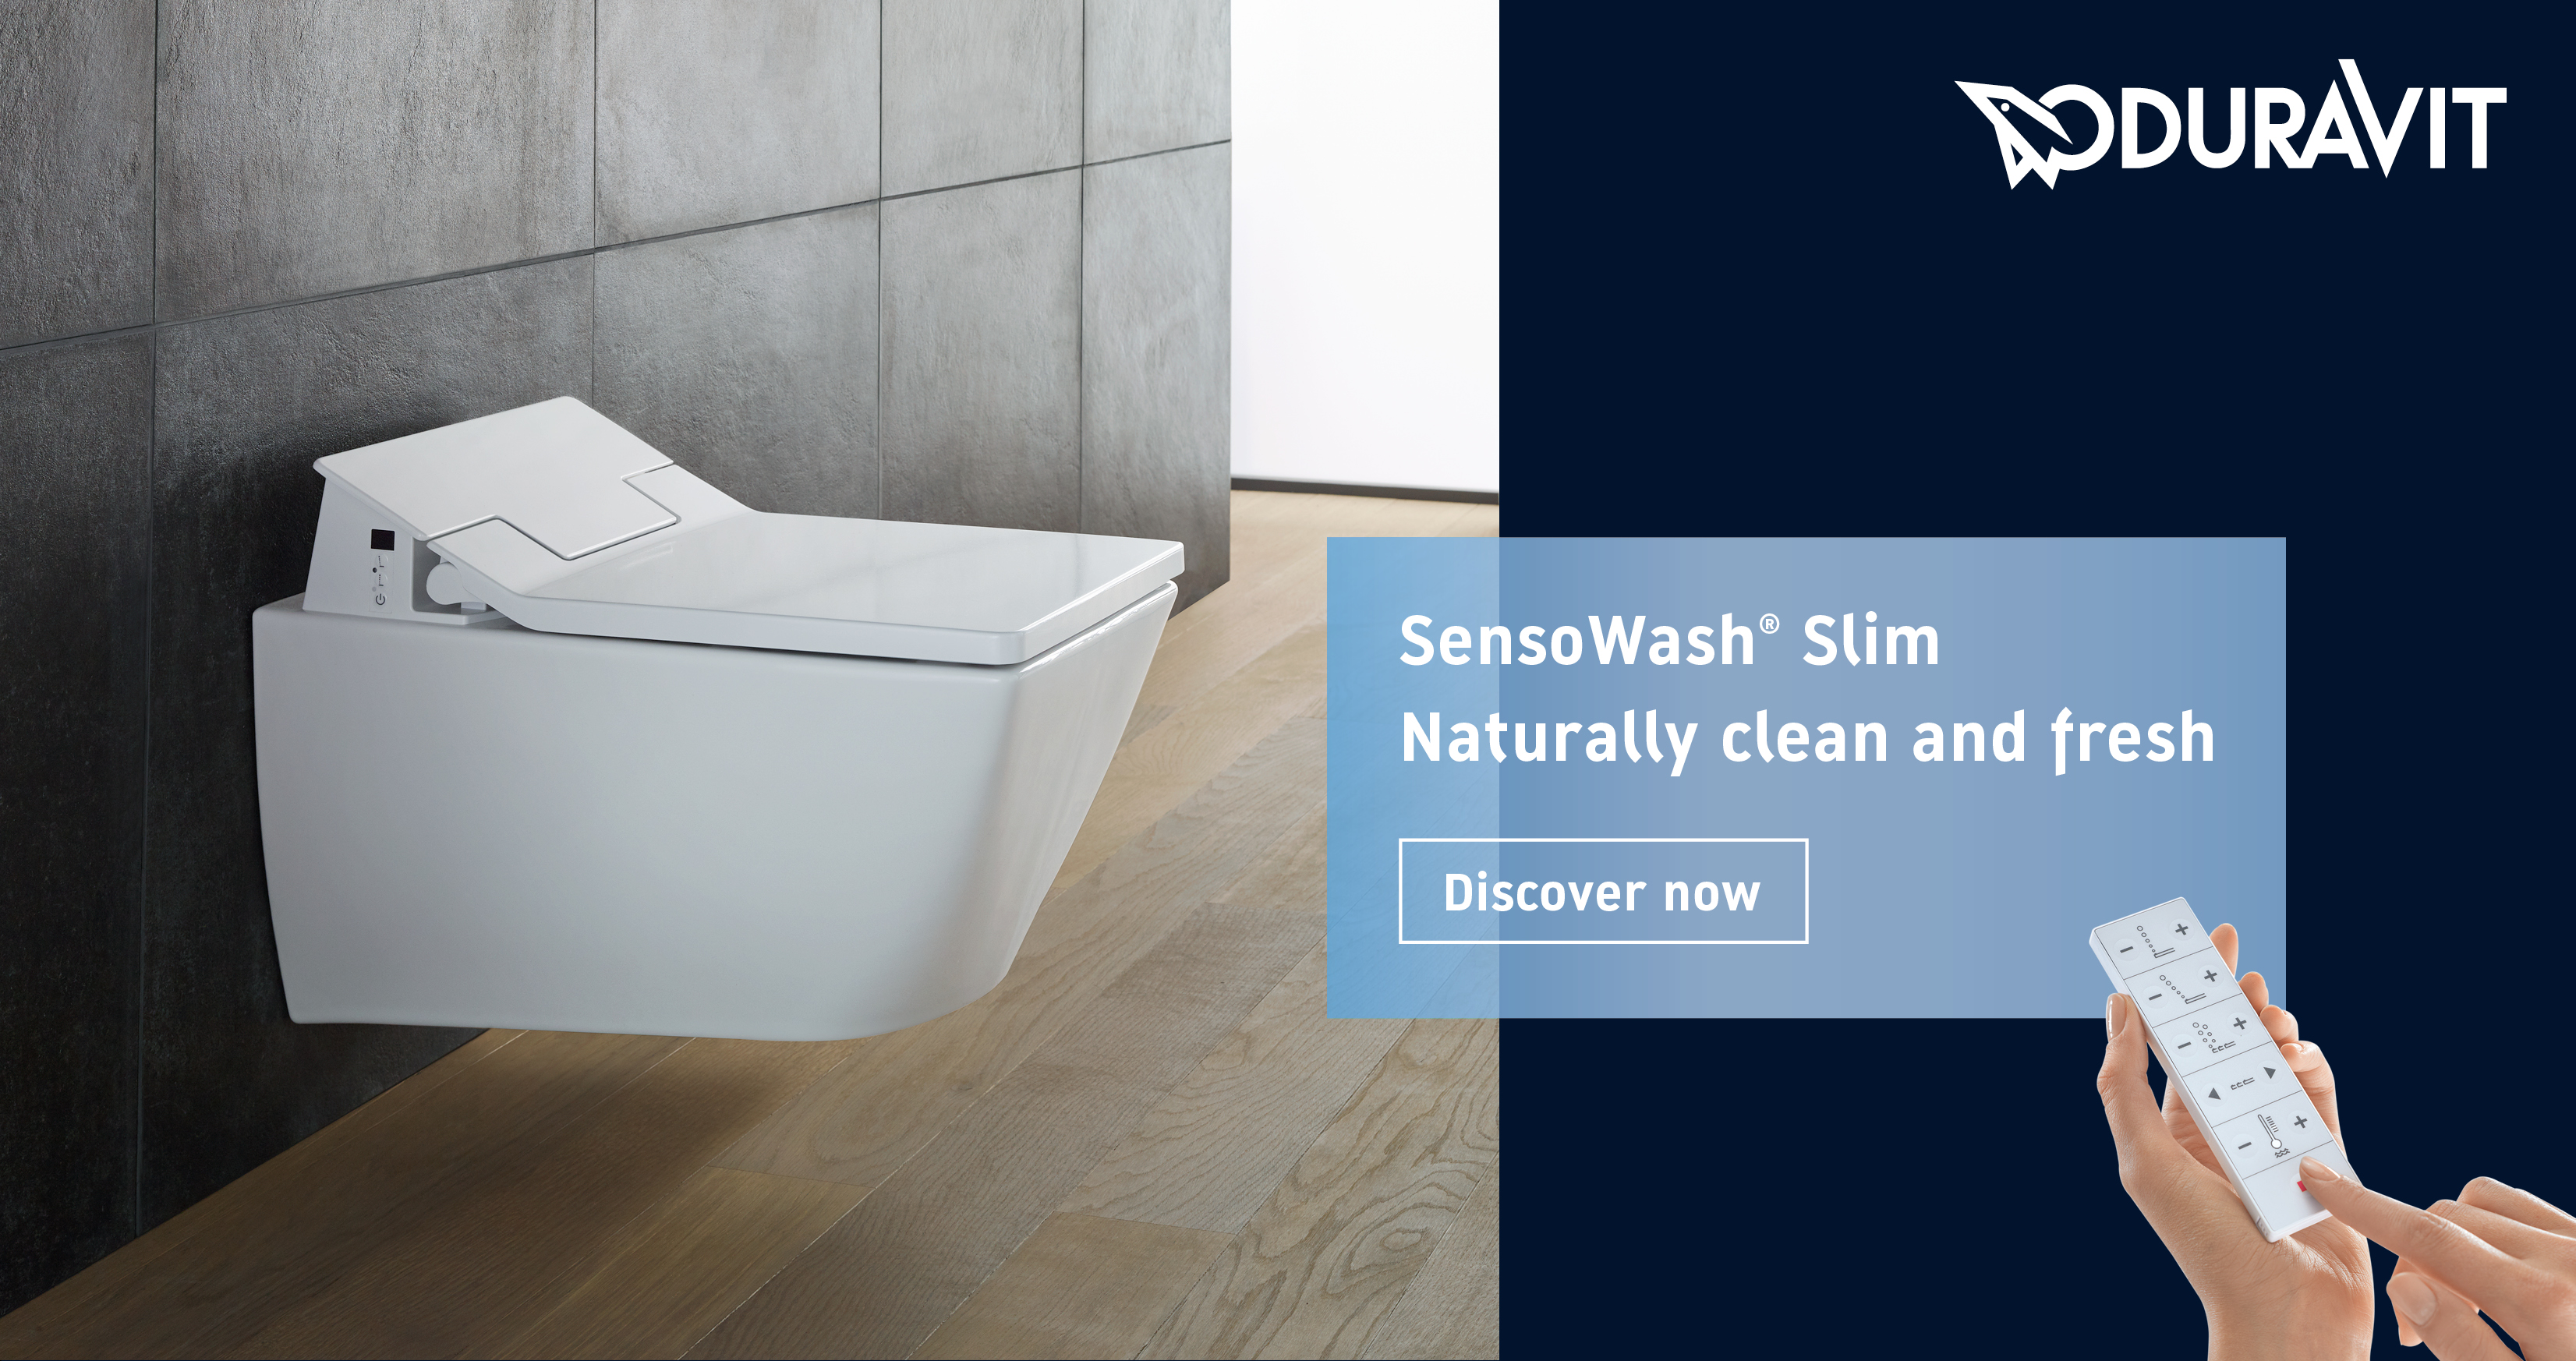 Duravit SenosWash Slim